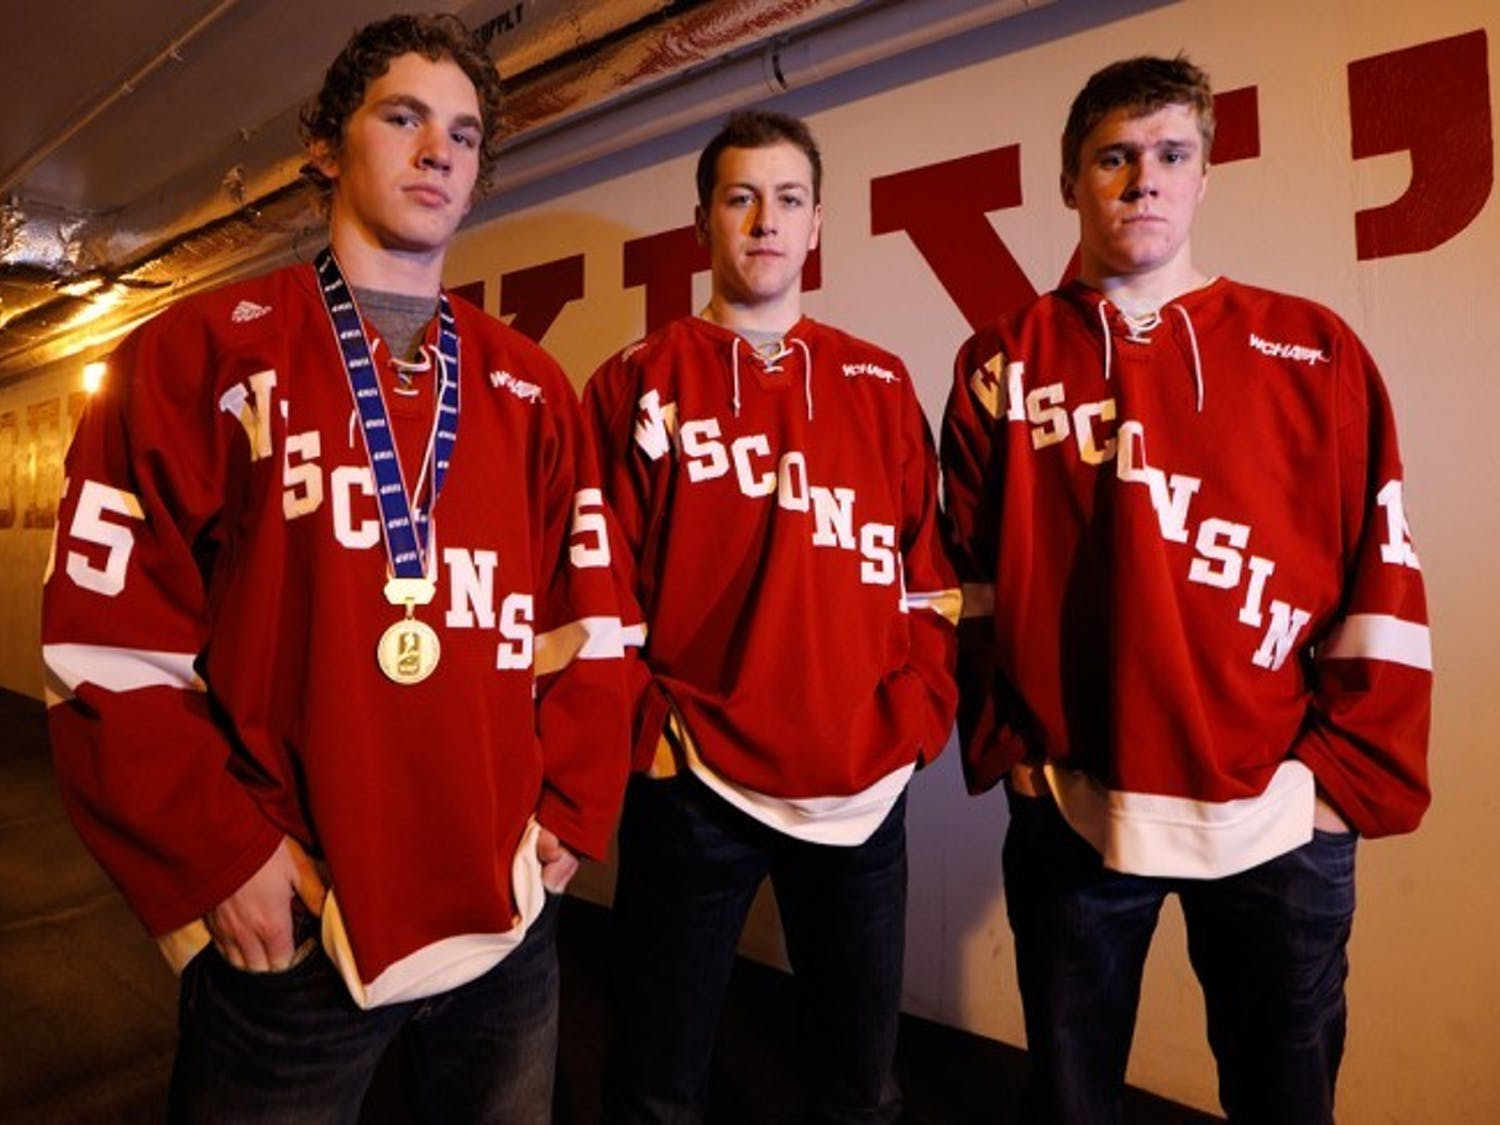 Thrilling finish sends Badgers home with gold